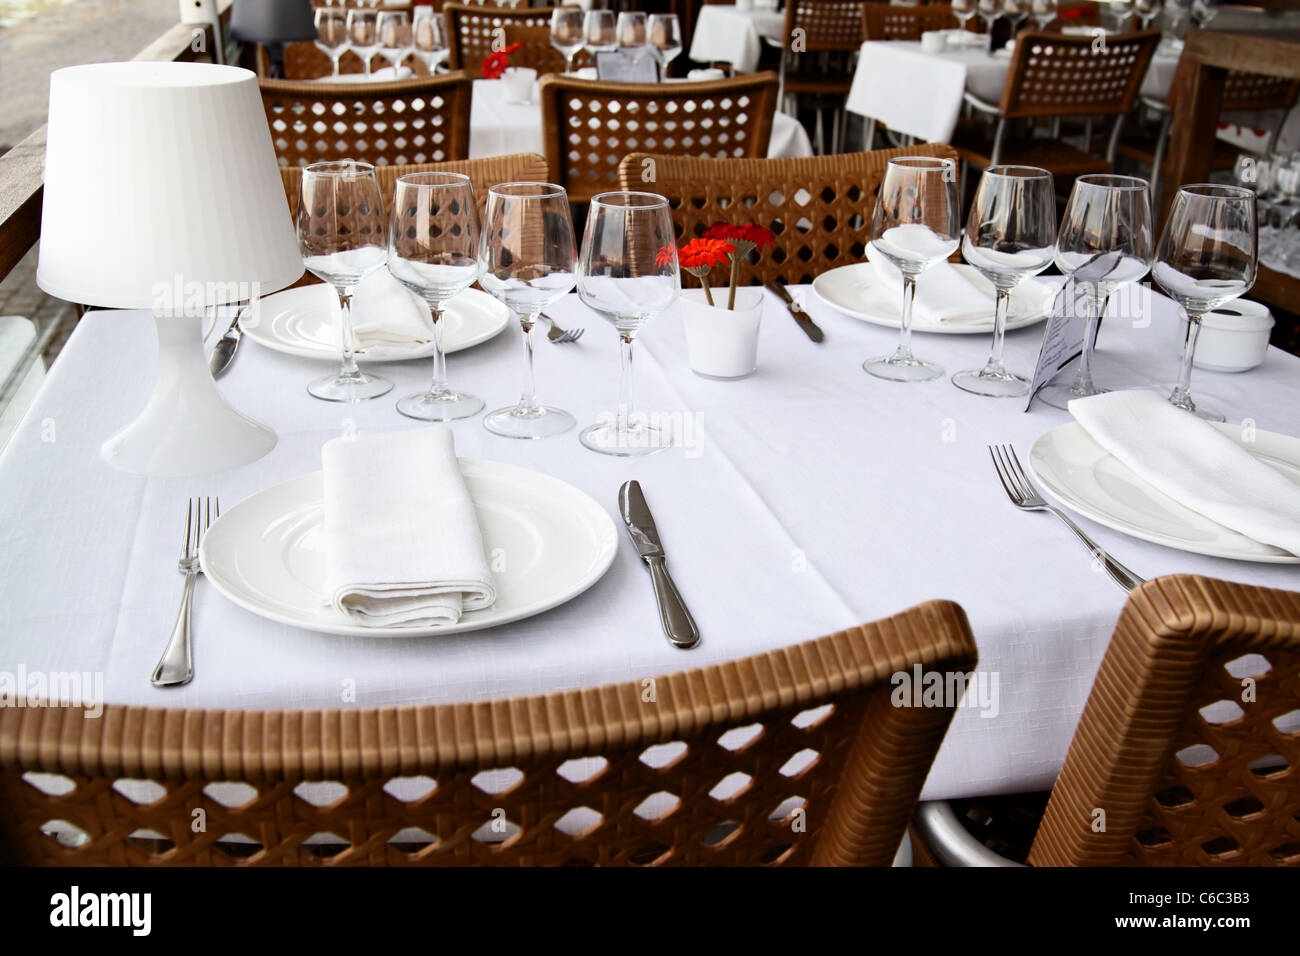 Table appointments at a restaurant close-up - Stock Image